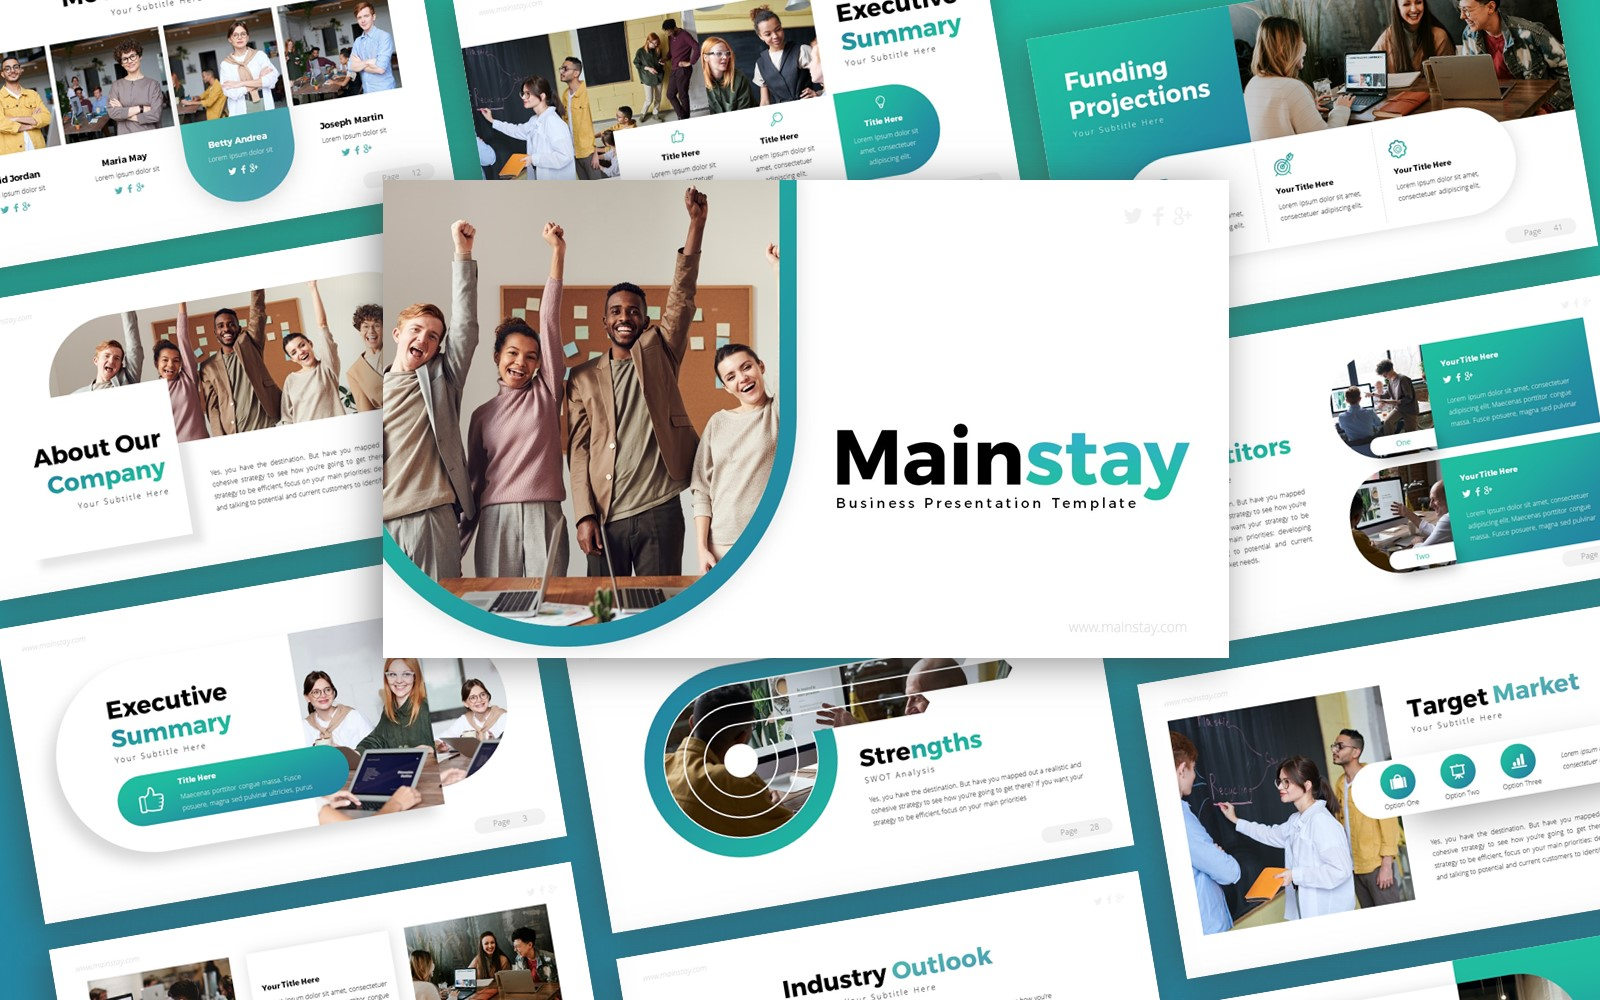 Mainstay Business Presentation PowerPoint Template